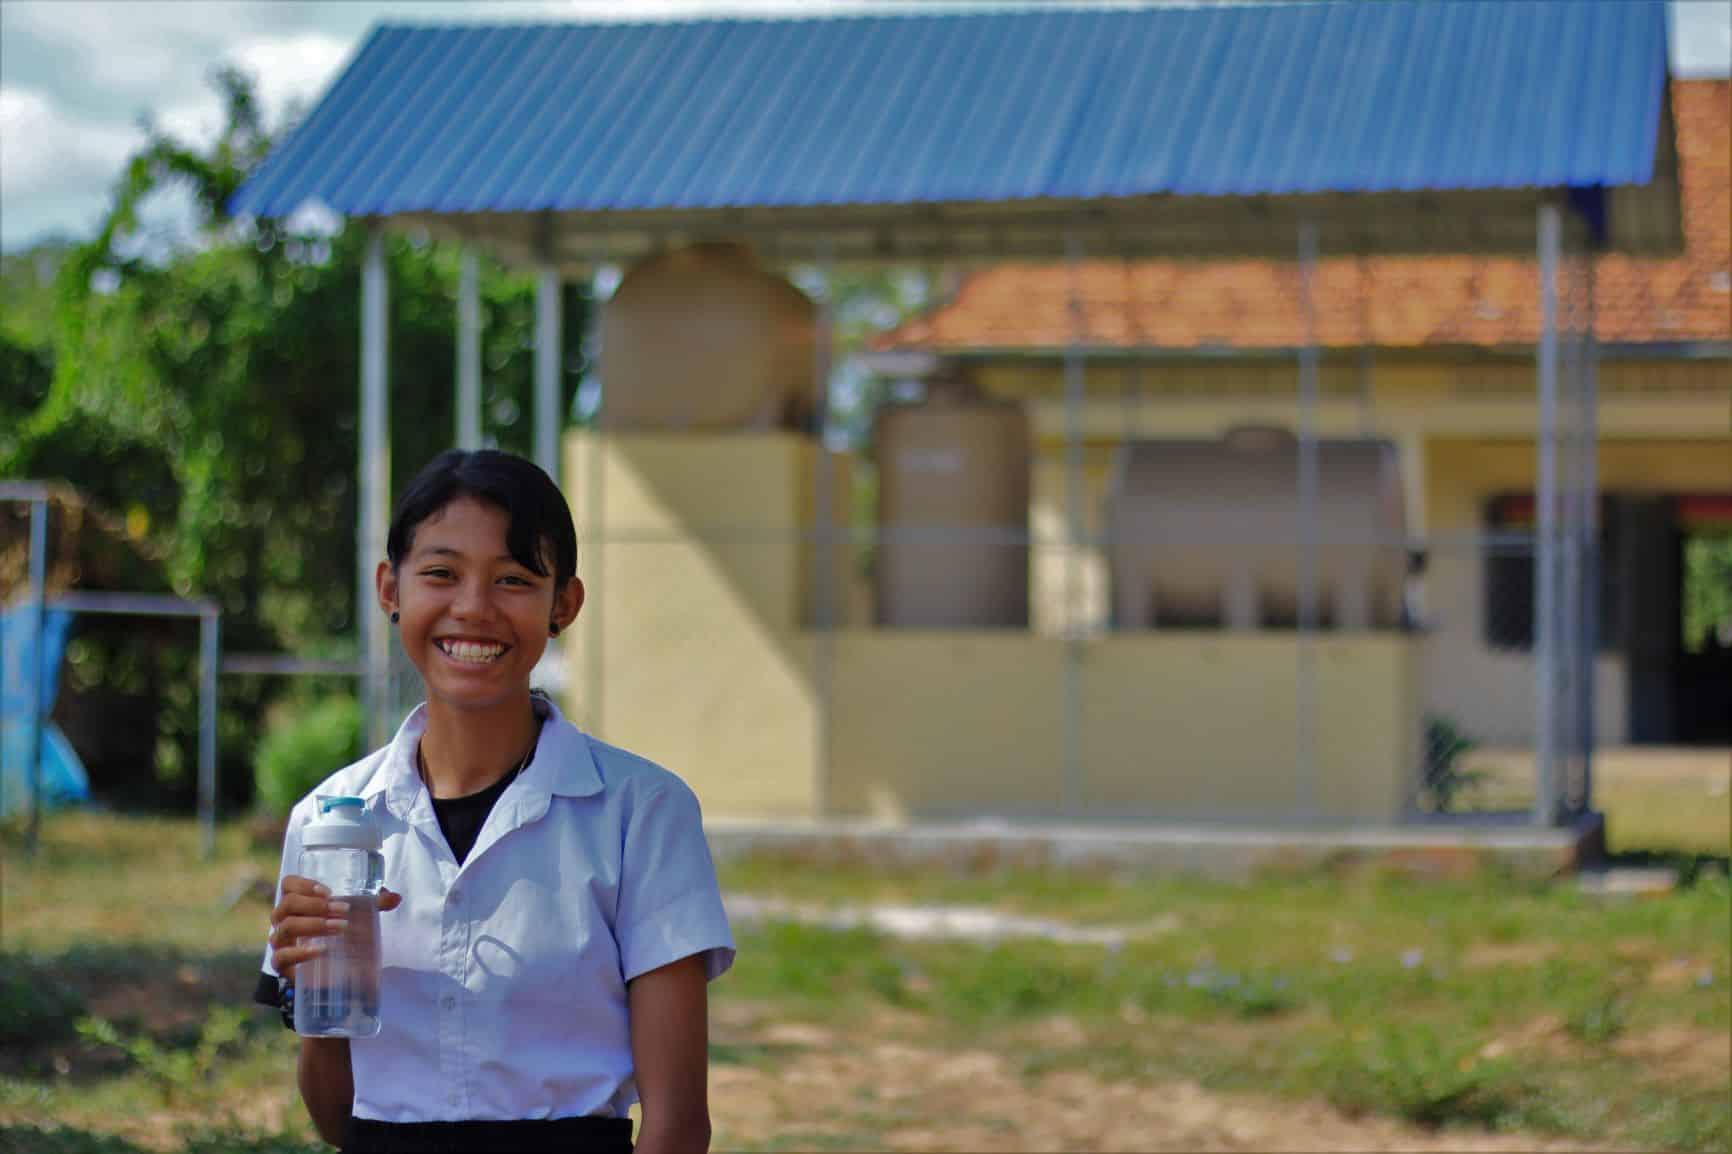 A school-sized BioSand Water Filter provides safe water for more than 300 students every day. Since the first filter built in Cambodia in 2011, donors like you have made it possible to install 371 across the country.